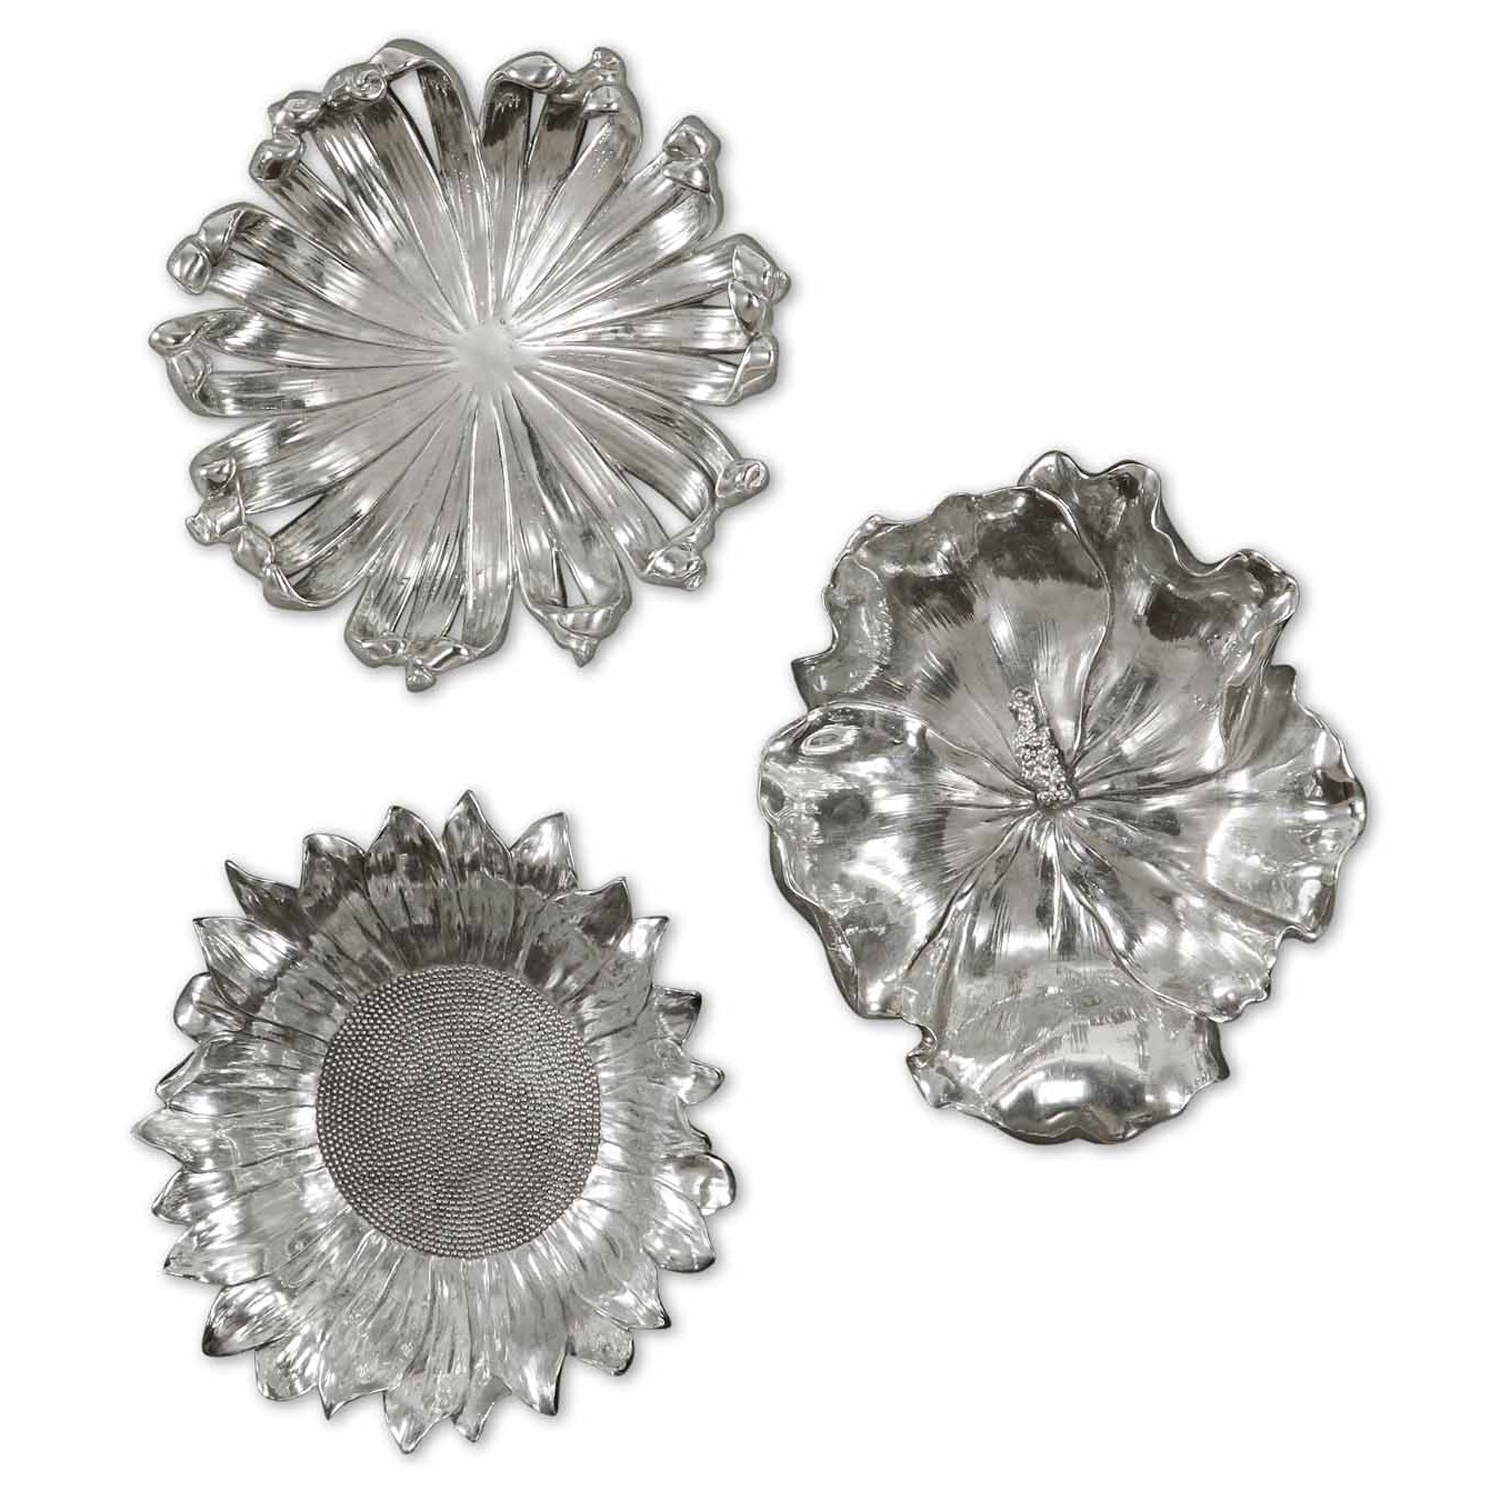 Uttermost Silver Flowers Metal Wall Art, Set Of Three 08503 (Gallery 9 of 15)